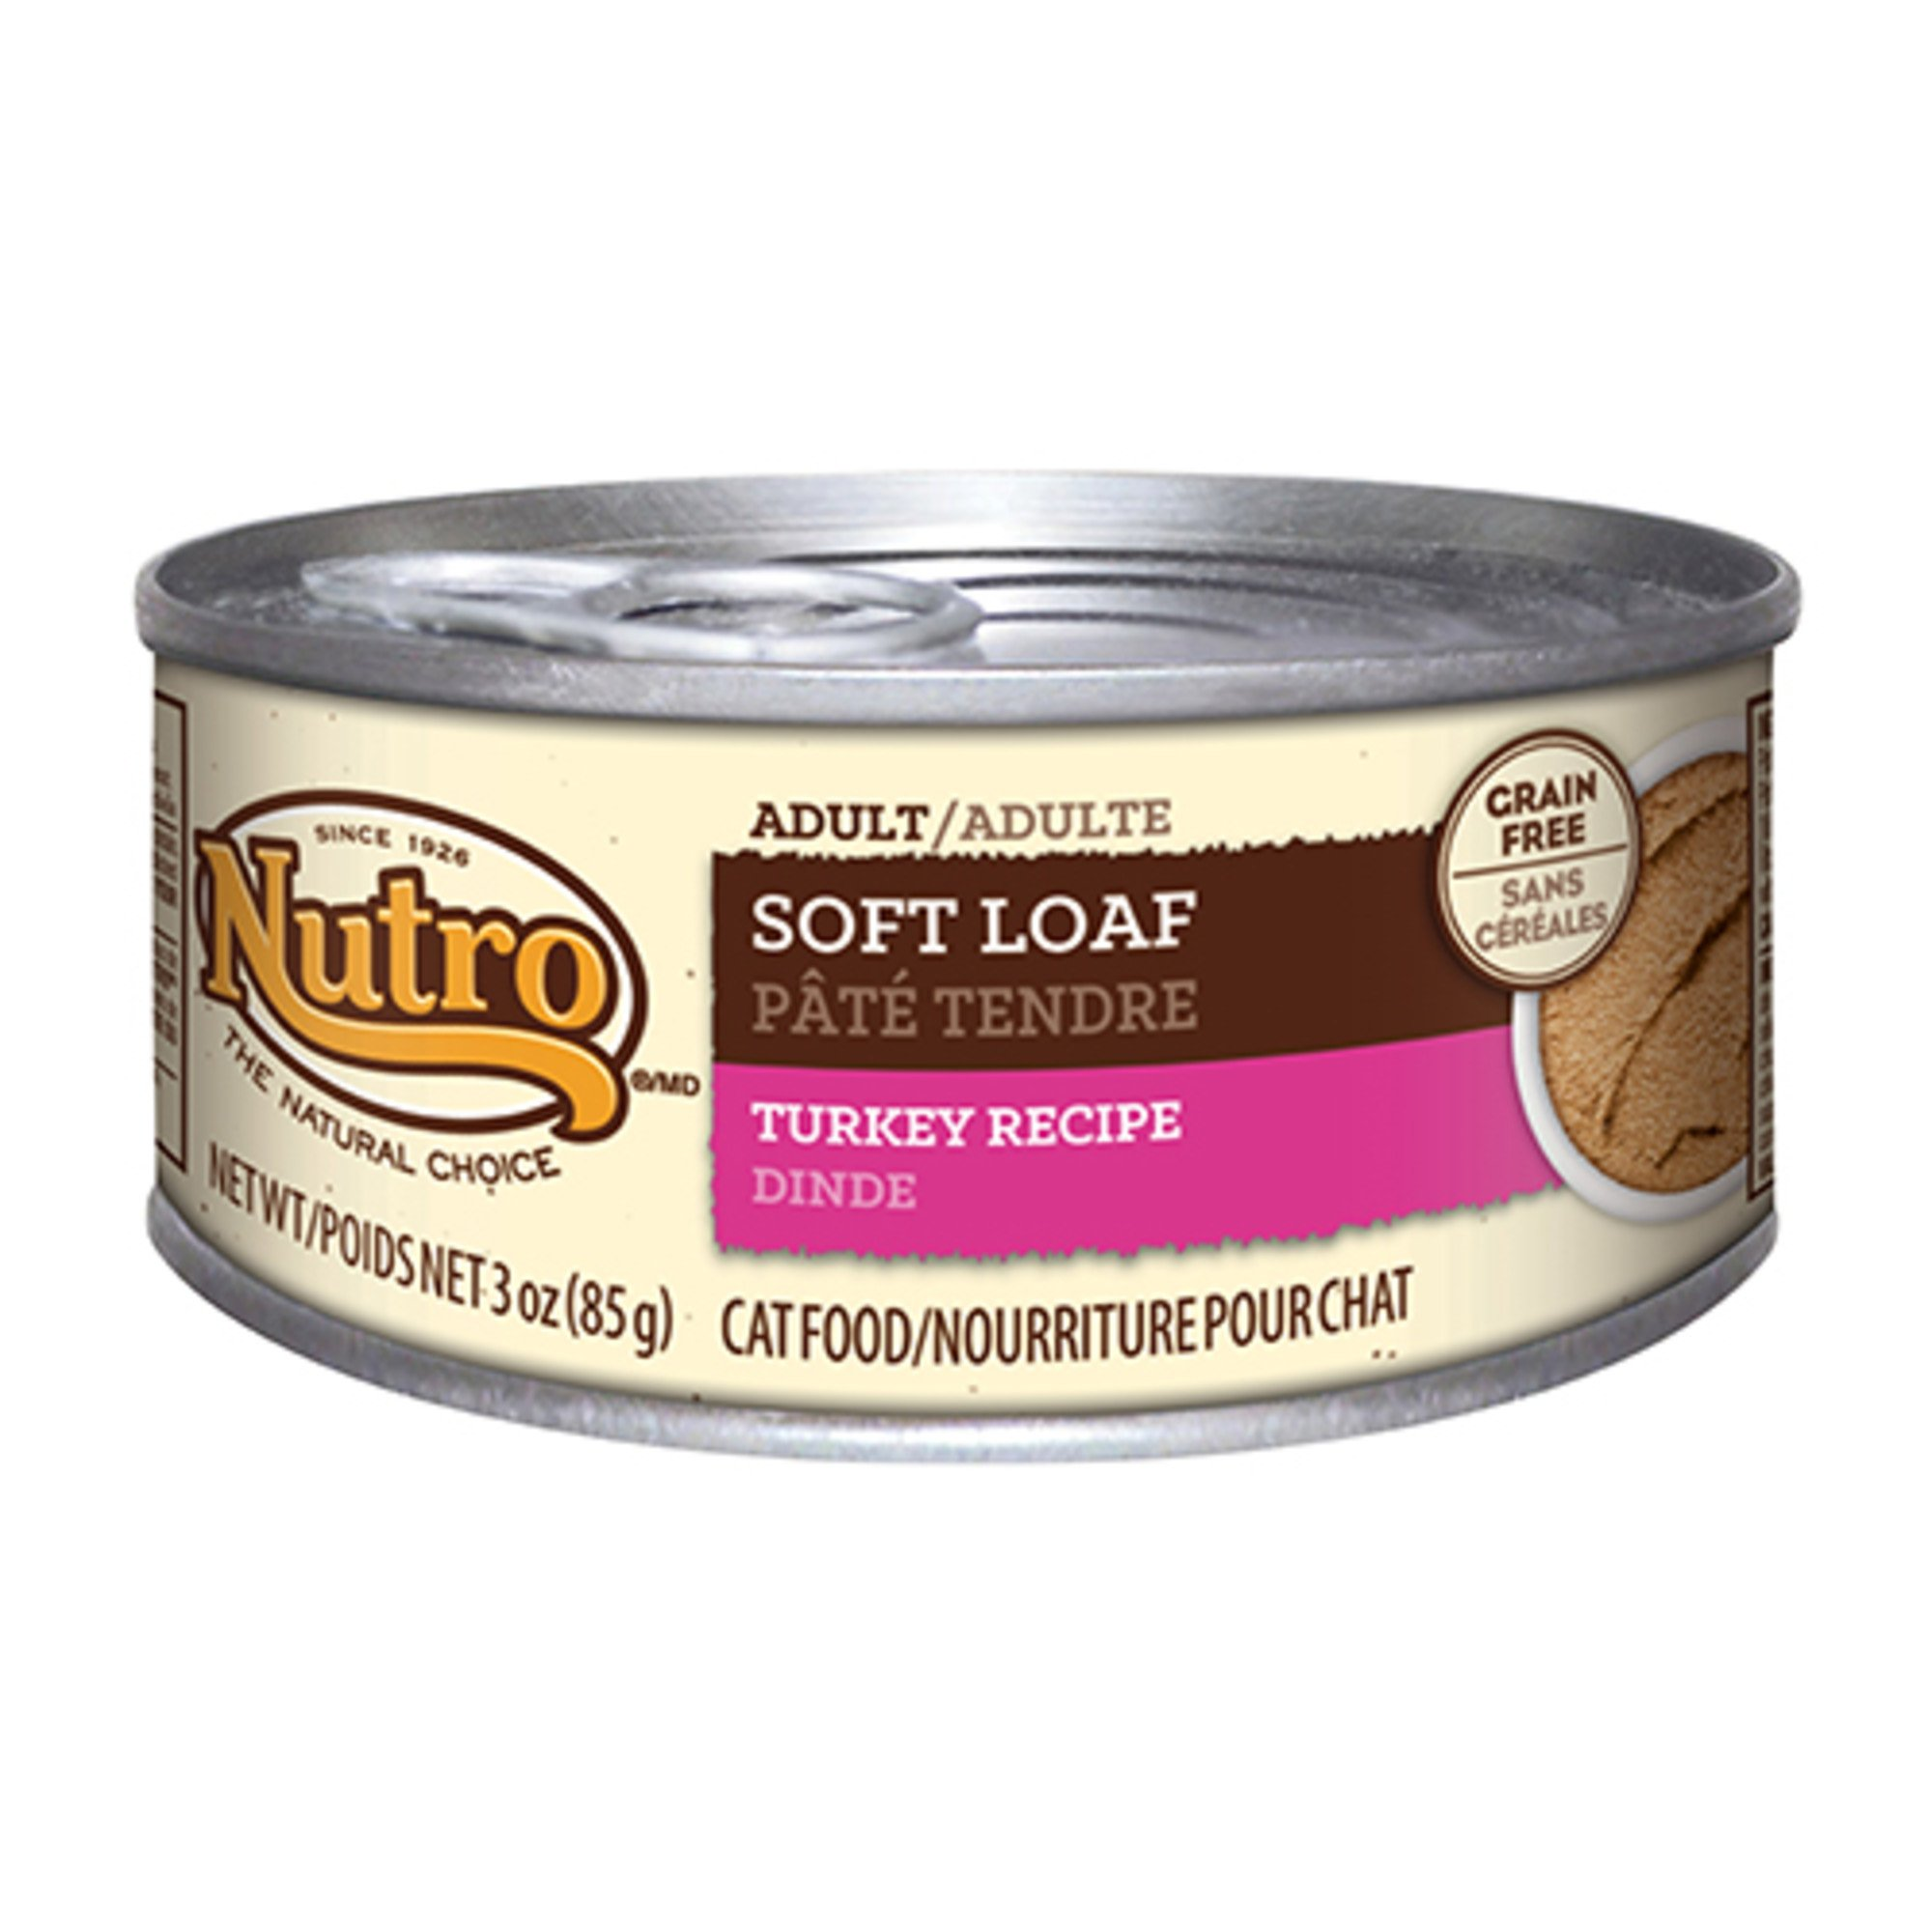 Nutro Soft Loaf Turkey Recipe Canned Adult Cat Food